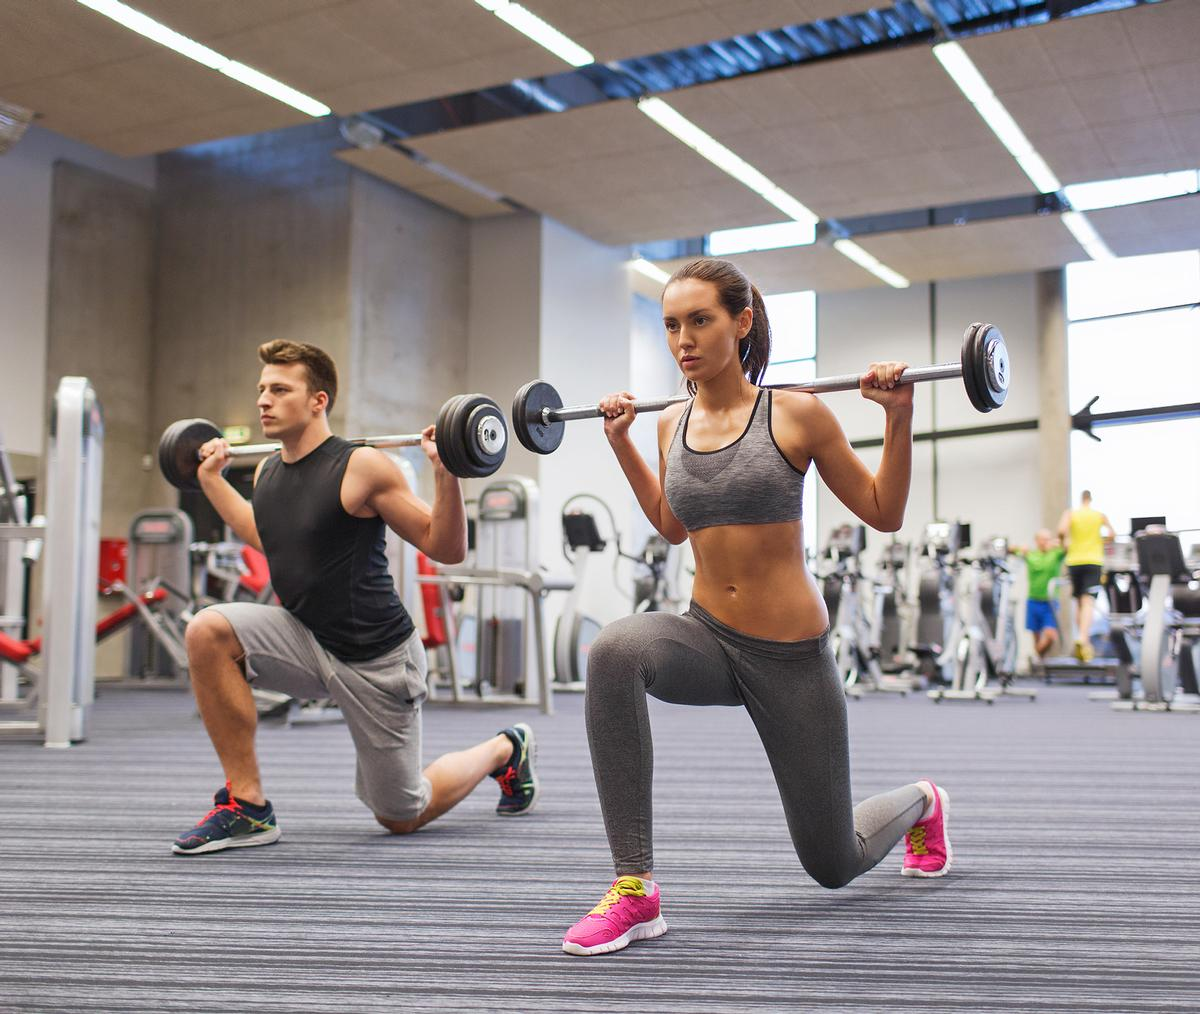 Despite being proven safe environments by visit date, gyms are among the businesses expected to be impacted by the restrictions included in the new 'very high' tier / Shutterstock.com/Syda Productions